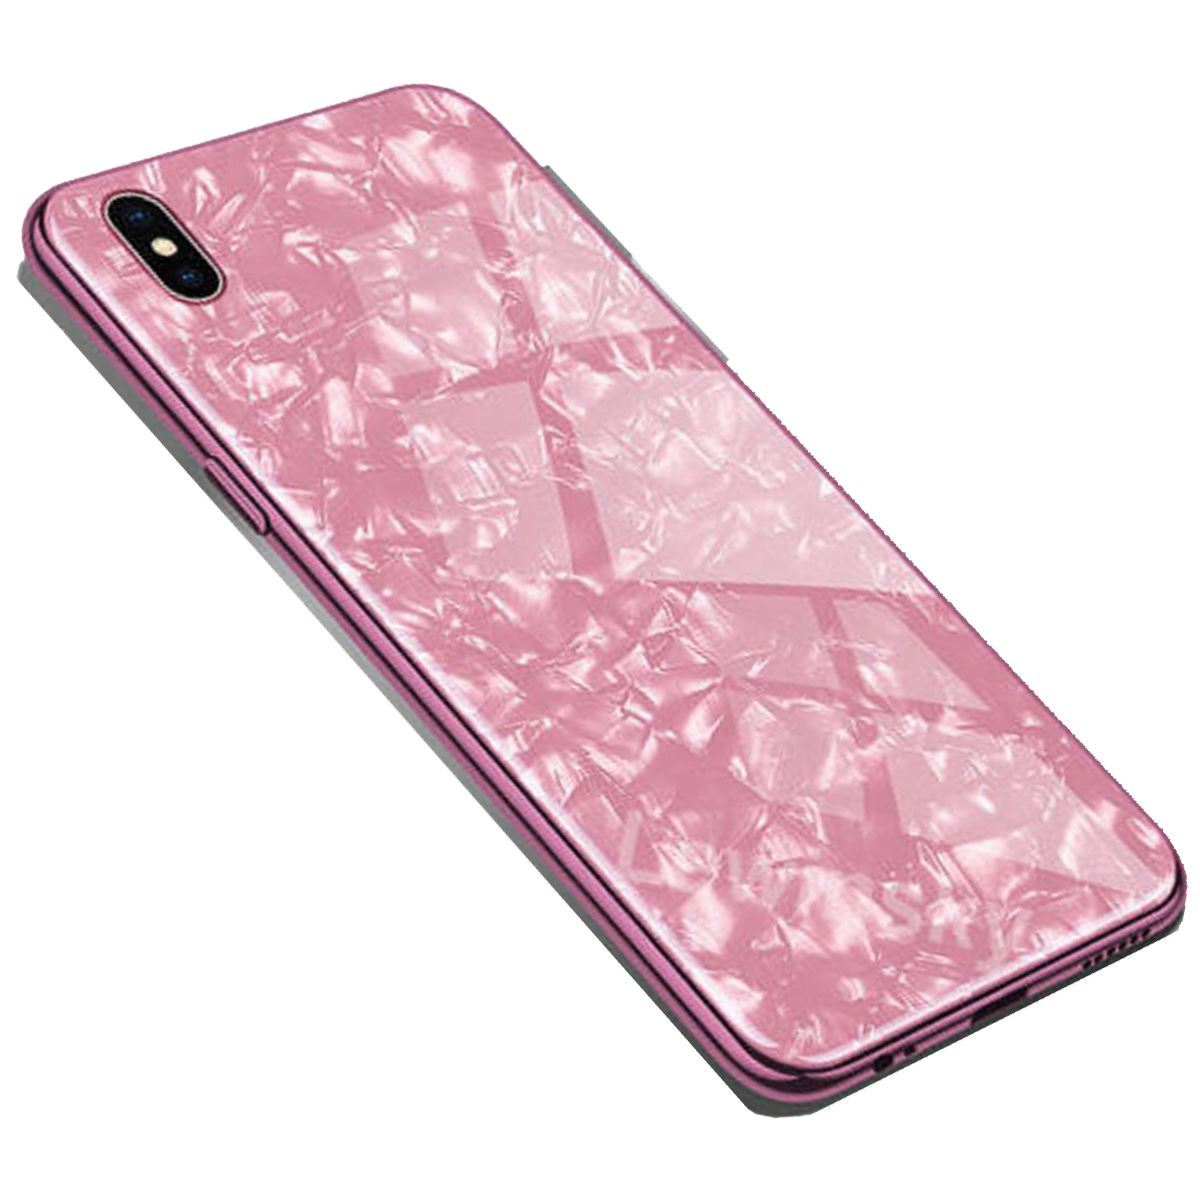 iPhone 11 Case Marble Back Bumper Cover - Rose Gold